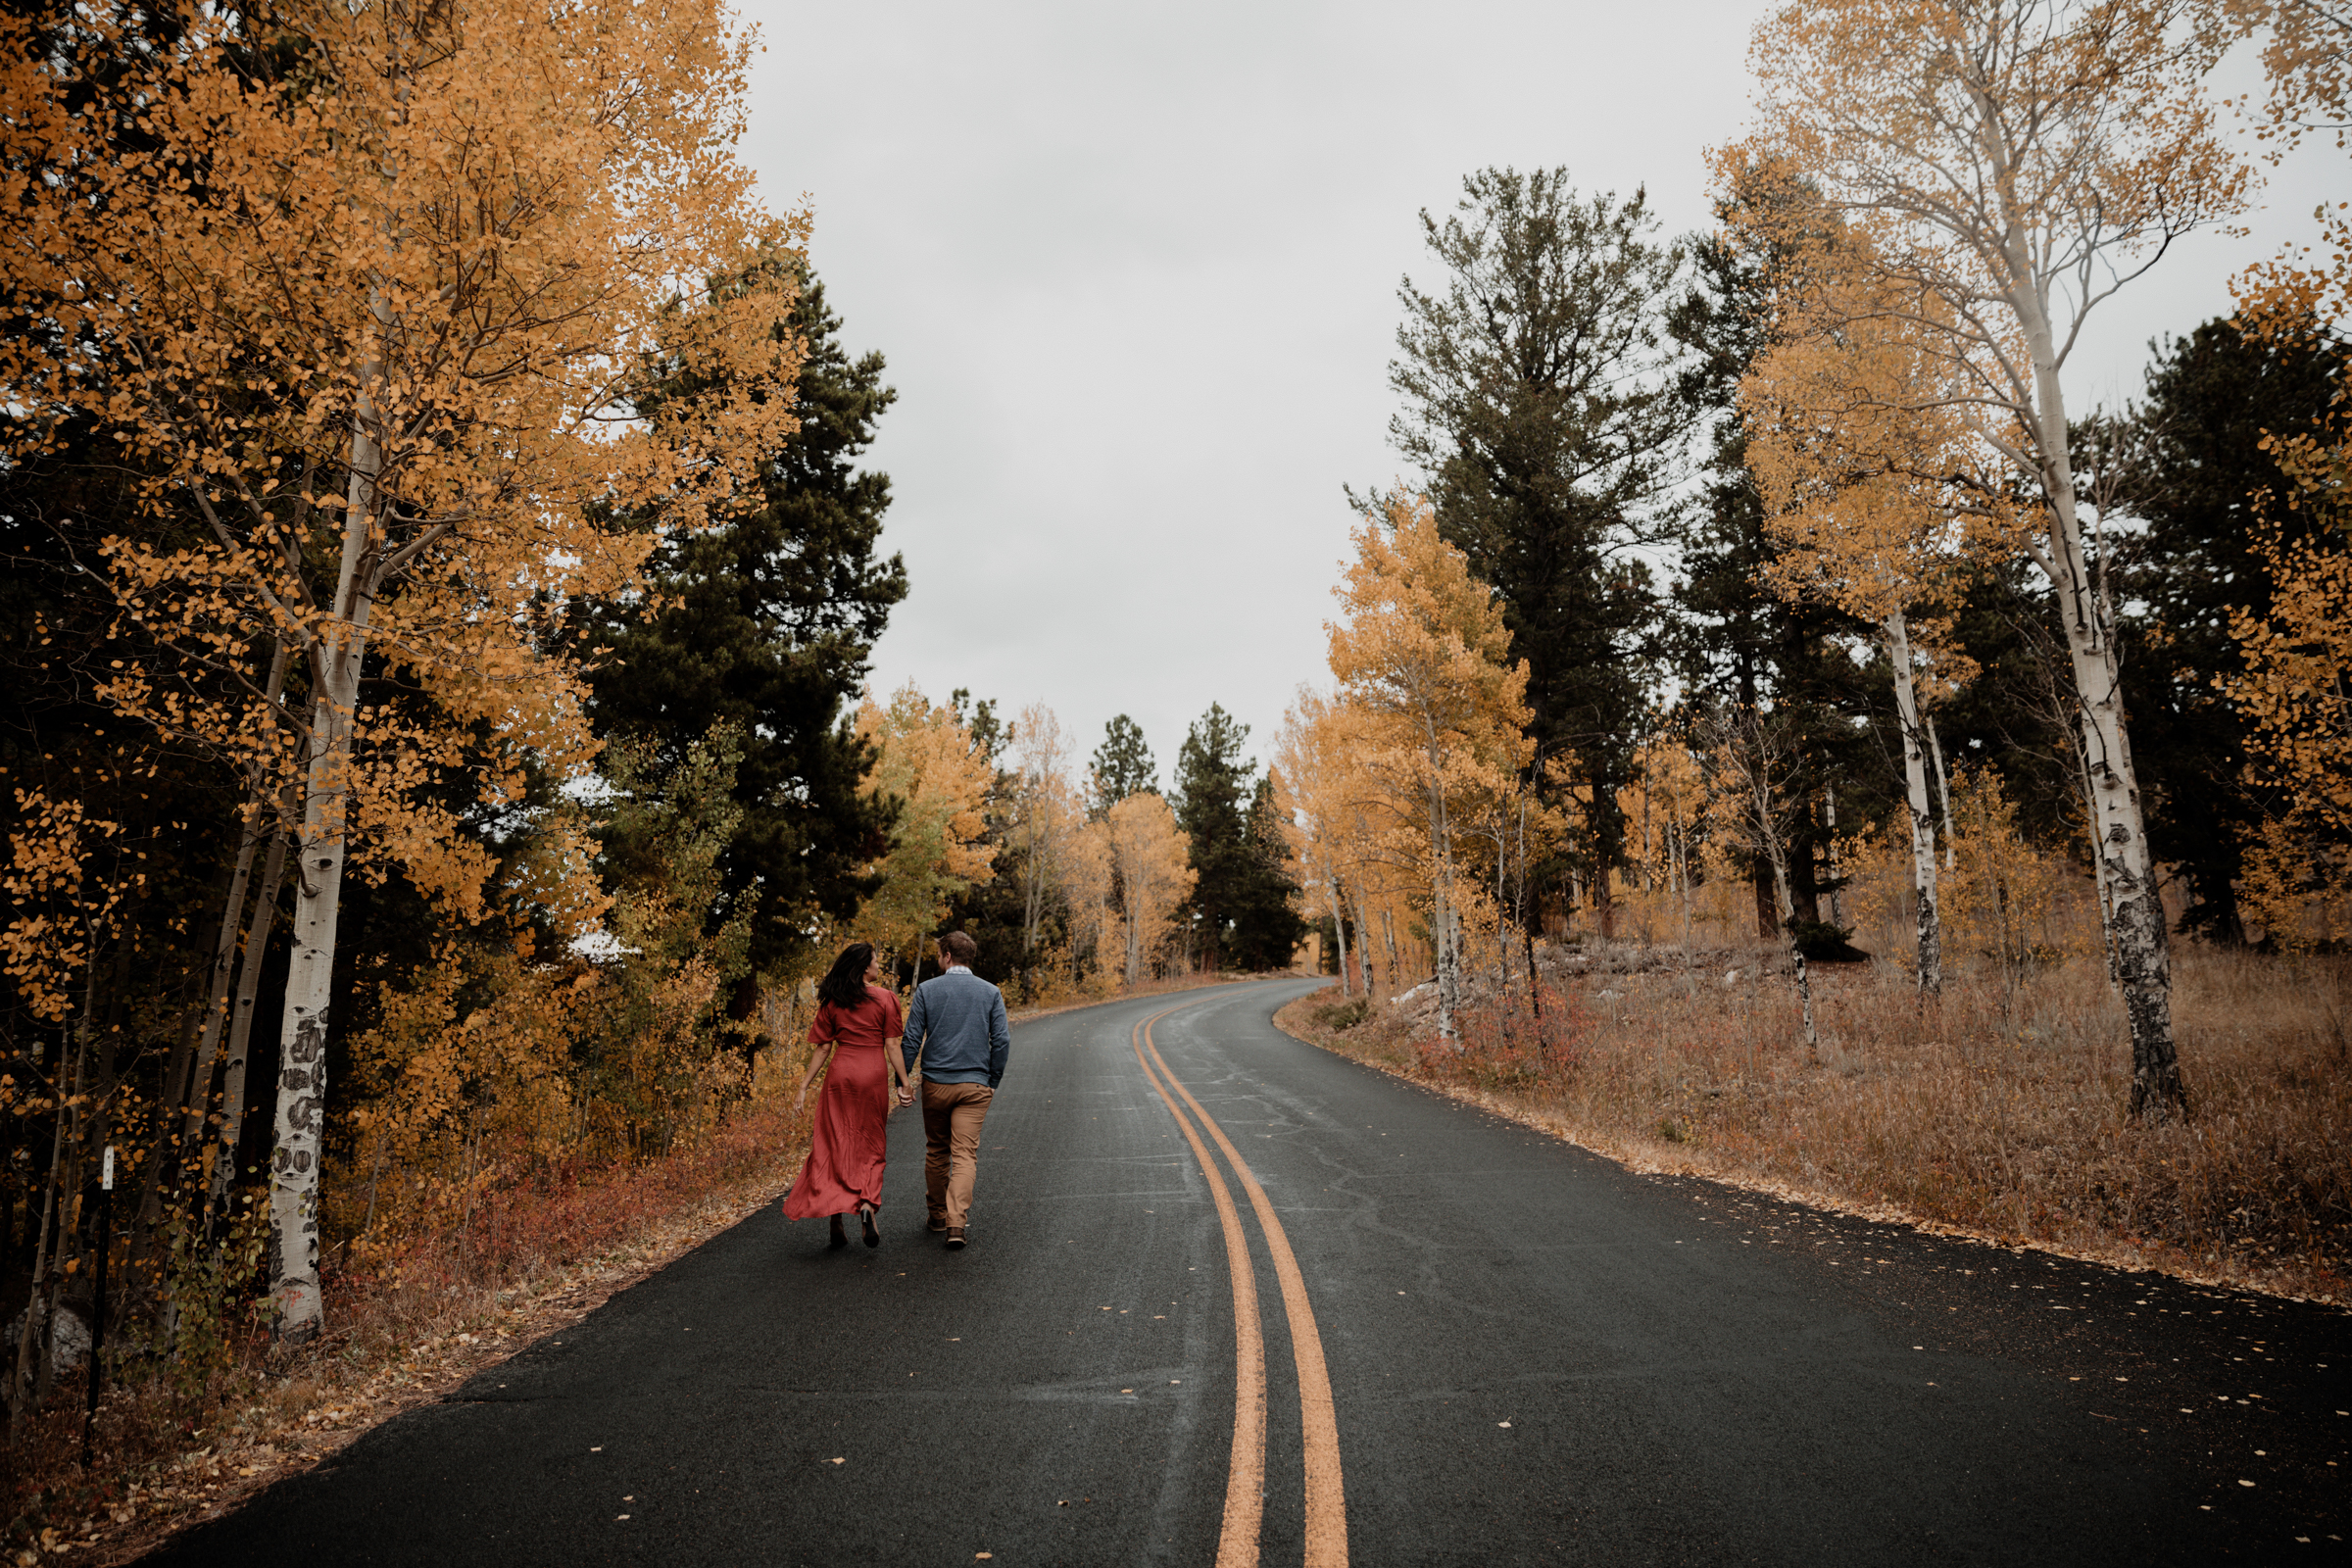 Mandy+Mike.Engagement-couturecoloradosubmission-38.jpg